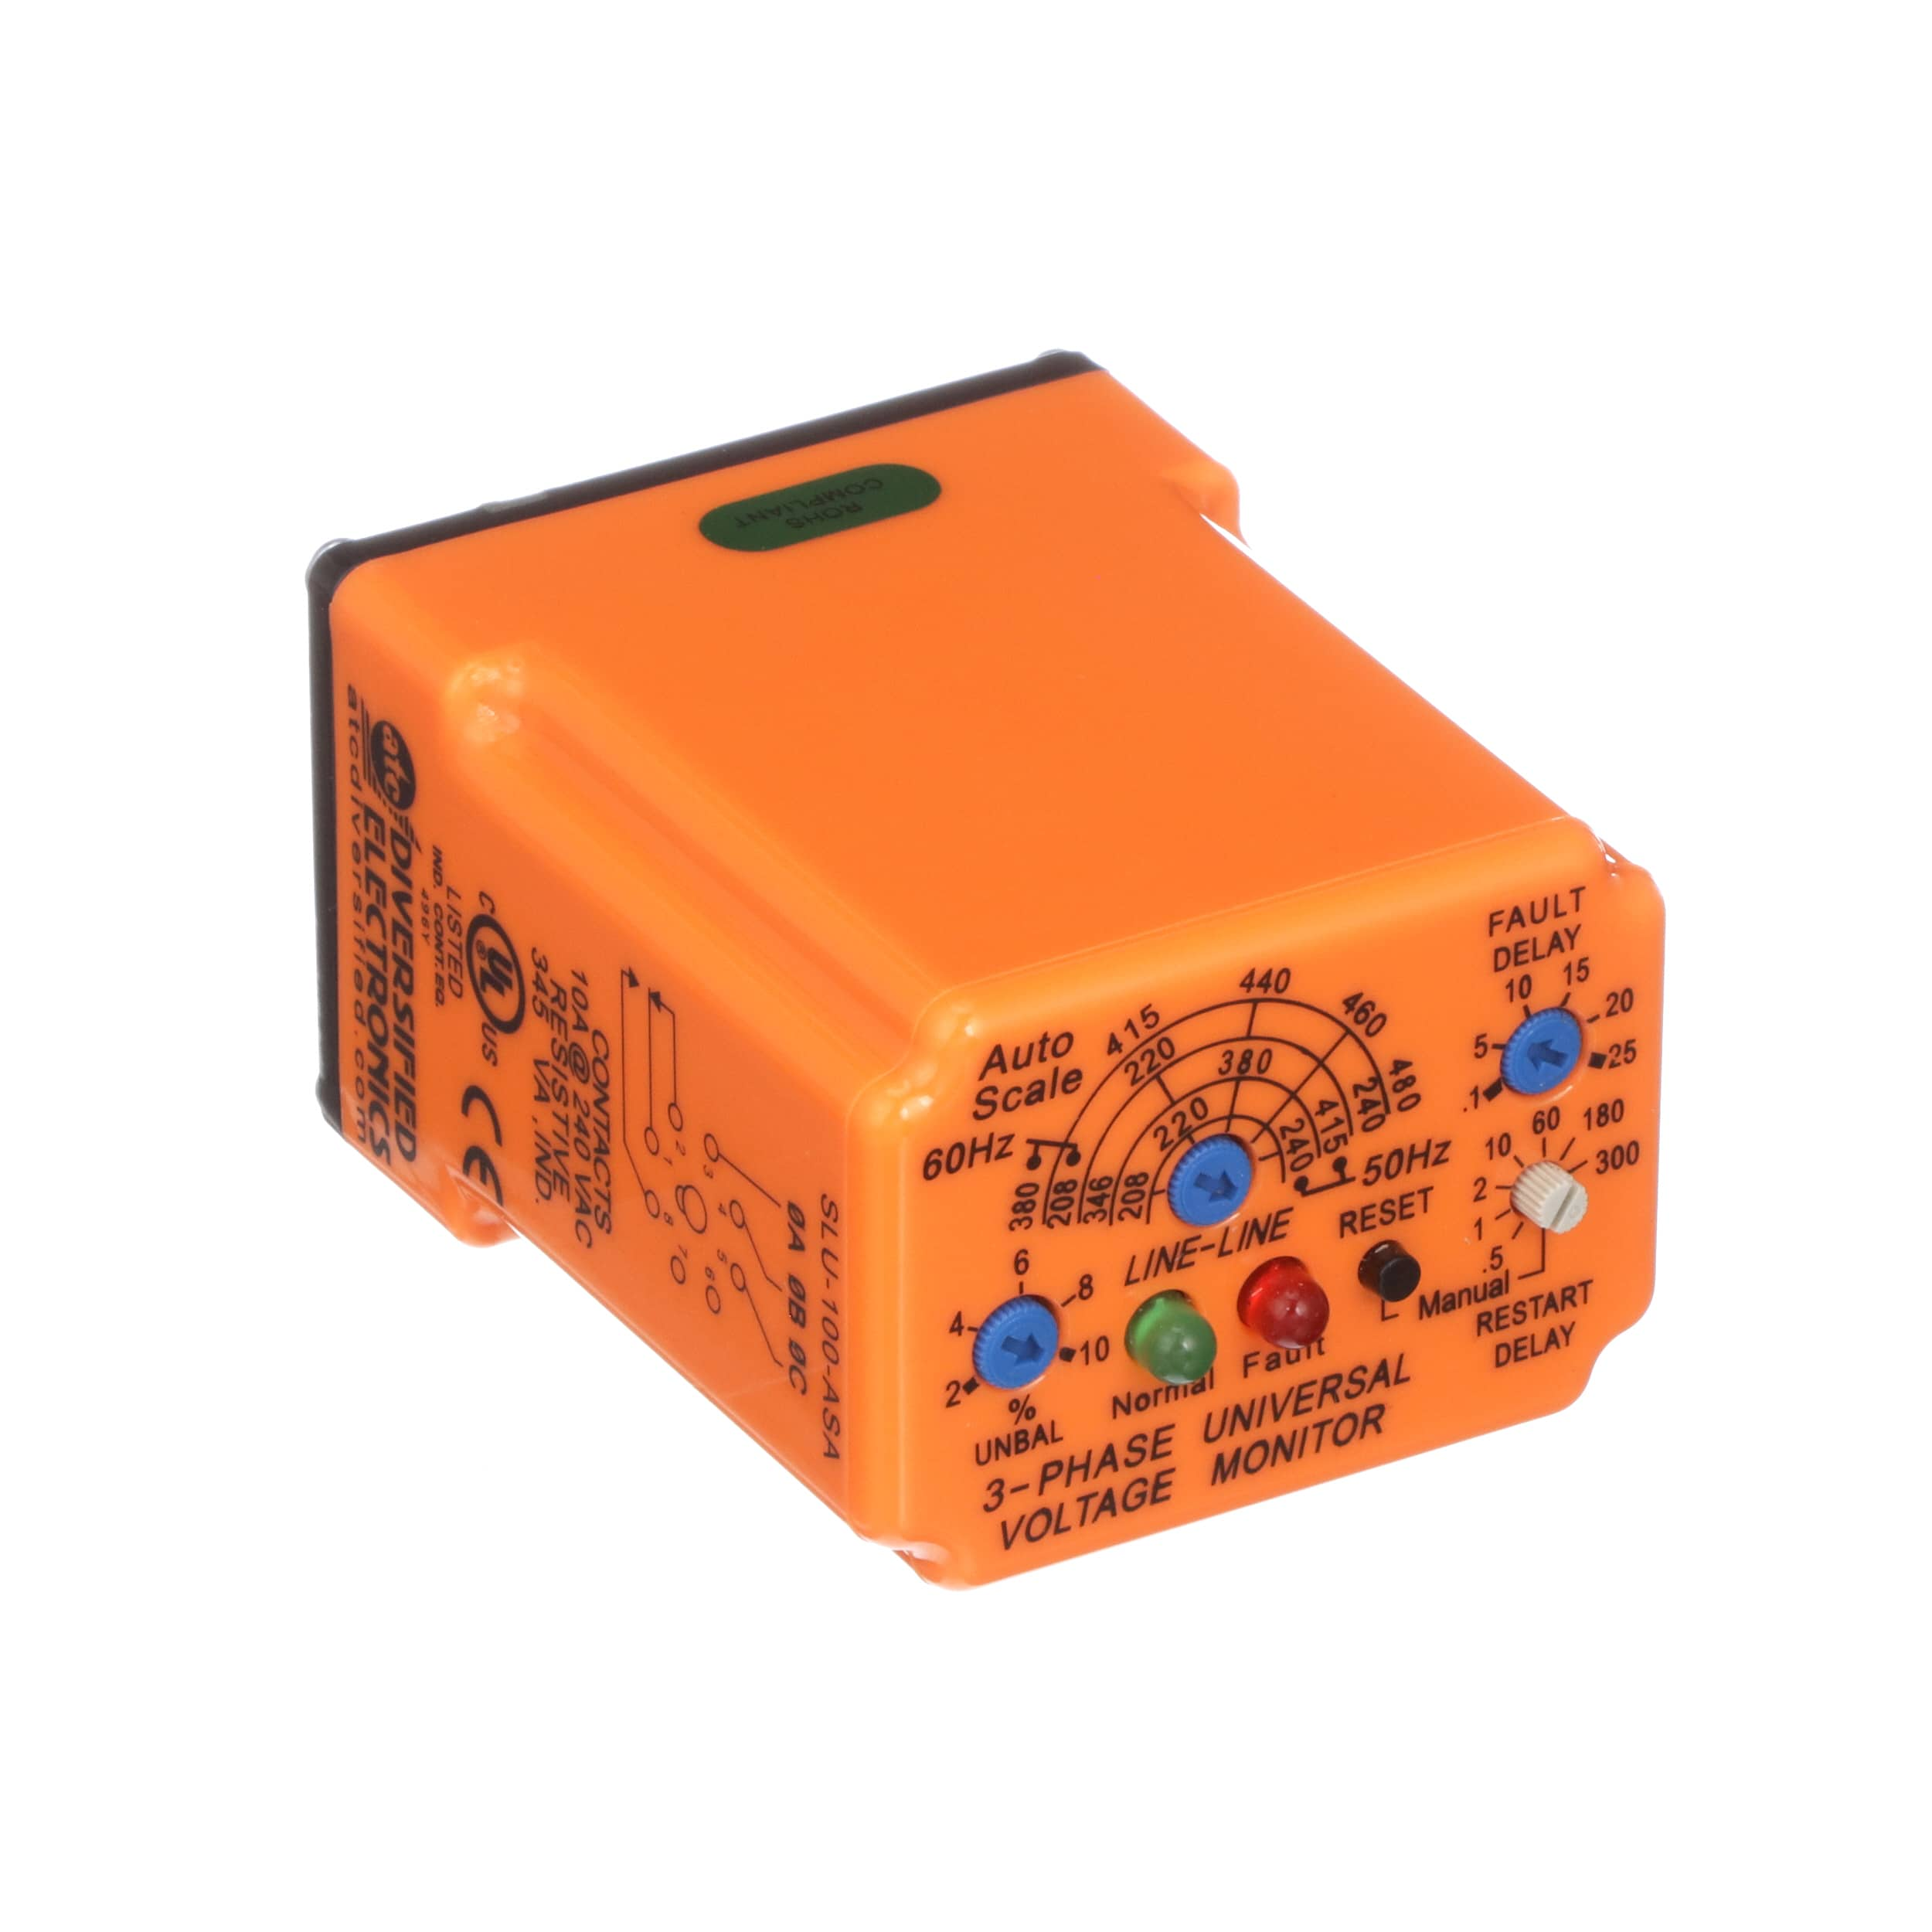 Atc Diversified Electronics Slu 100 Asa Relay E Mech 3 Phase Current Sensing Vacuum Monitor 10a 550vac Culus Listed Ce Marked Allied Automation